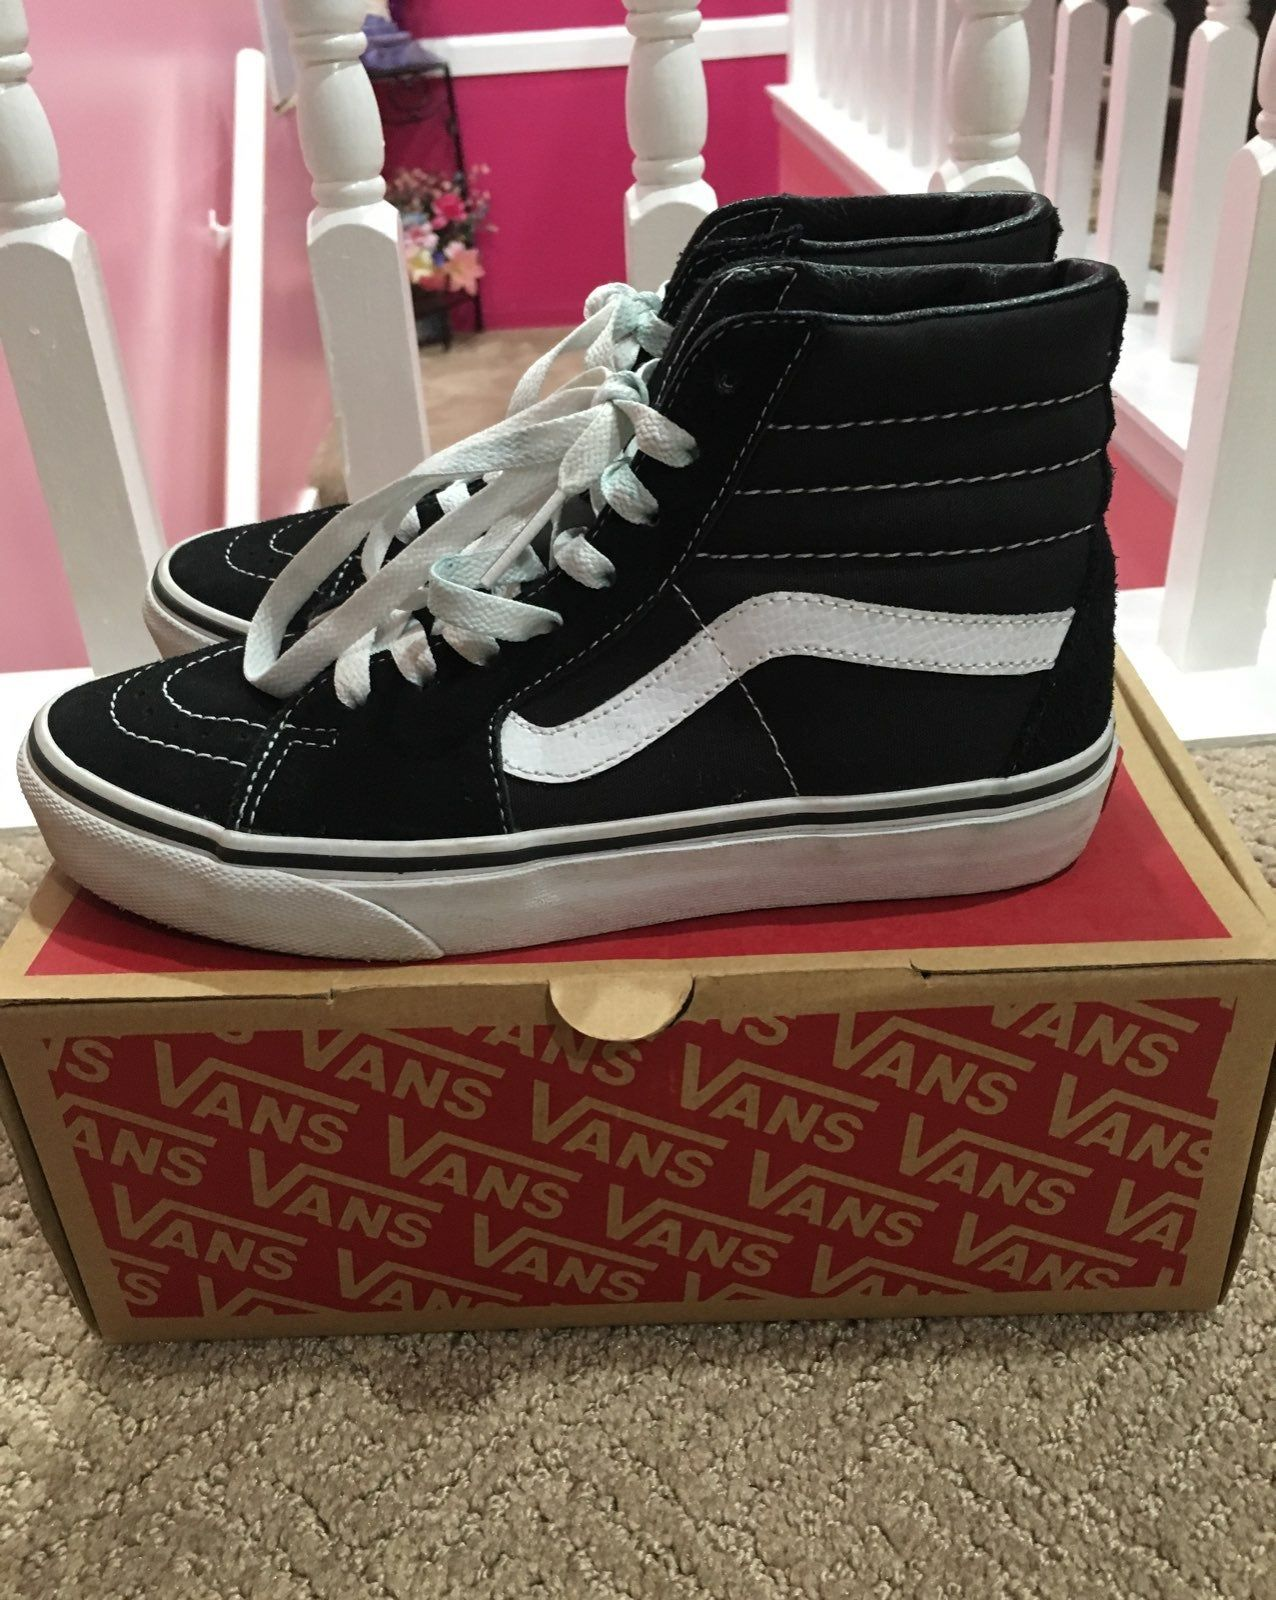 Black and white high top vans. Women a